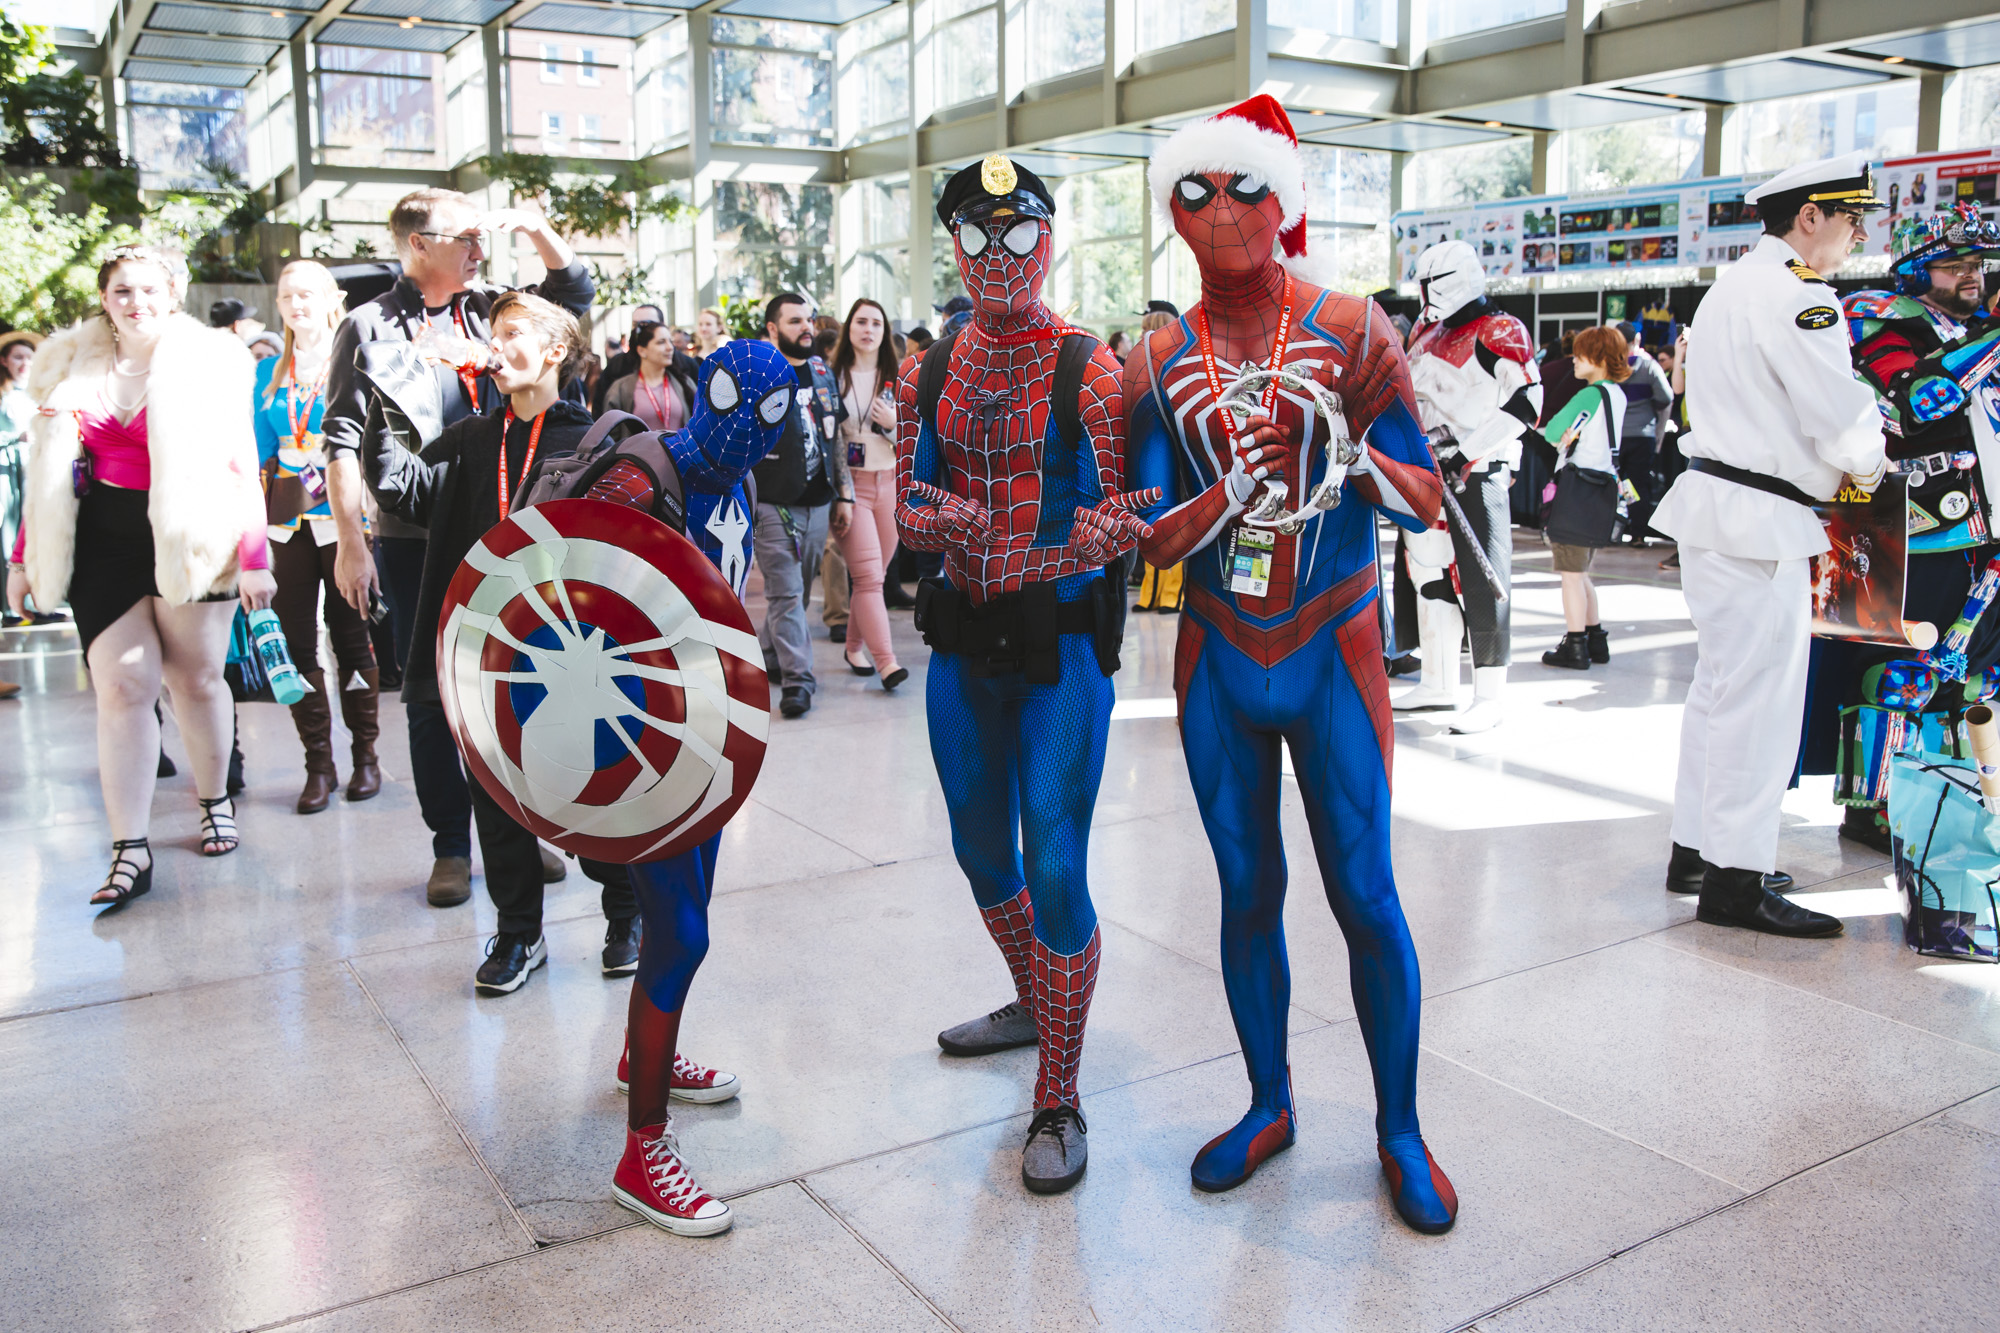 Emerald City Comic Con is the largest comic book and pop culture convention in the Pacific Northwest. Thousands come to the Washington State Convention Center in Seattle for 4 days of cosplay, comic books, celebrities, panels and more. This year, they're expecting upwards of 95,000 people! Today, (March 17, 2019) is the final day of ECCC. (Image: Sunita Martini / Seattle Refined)